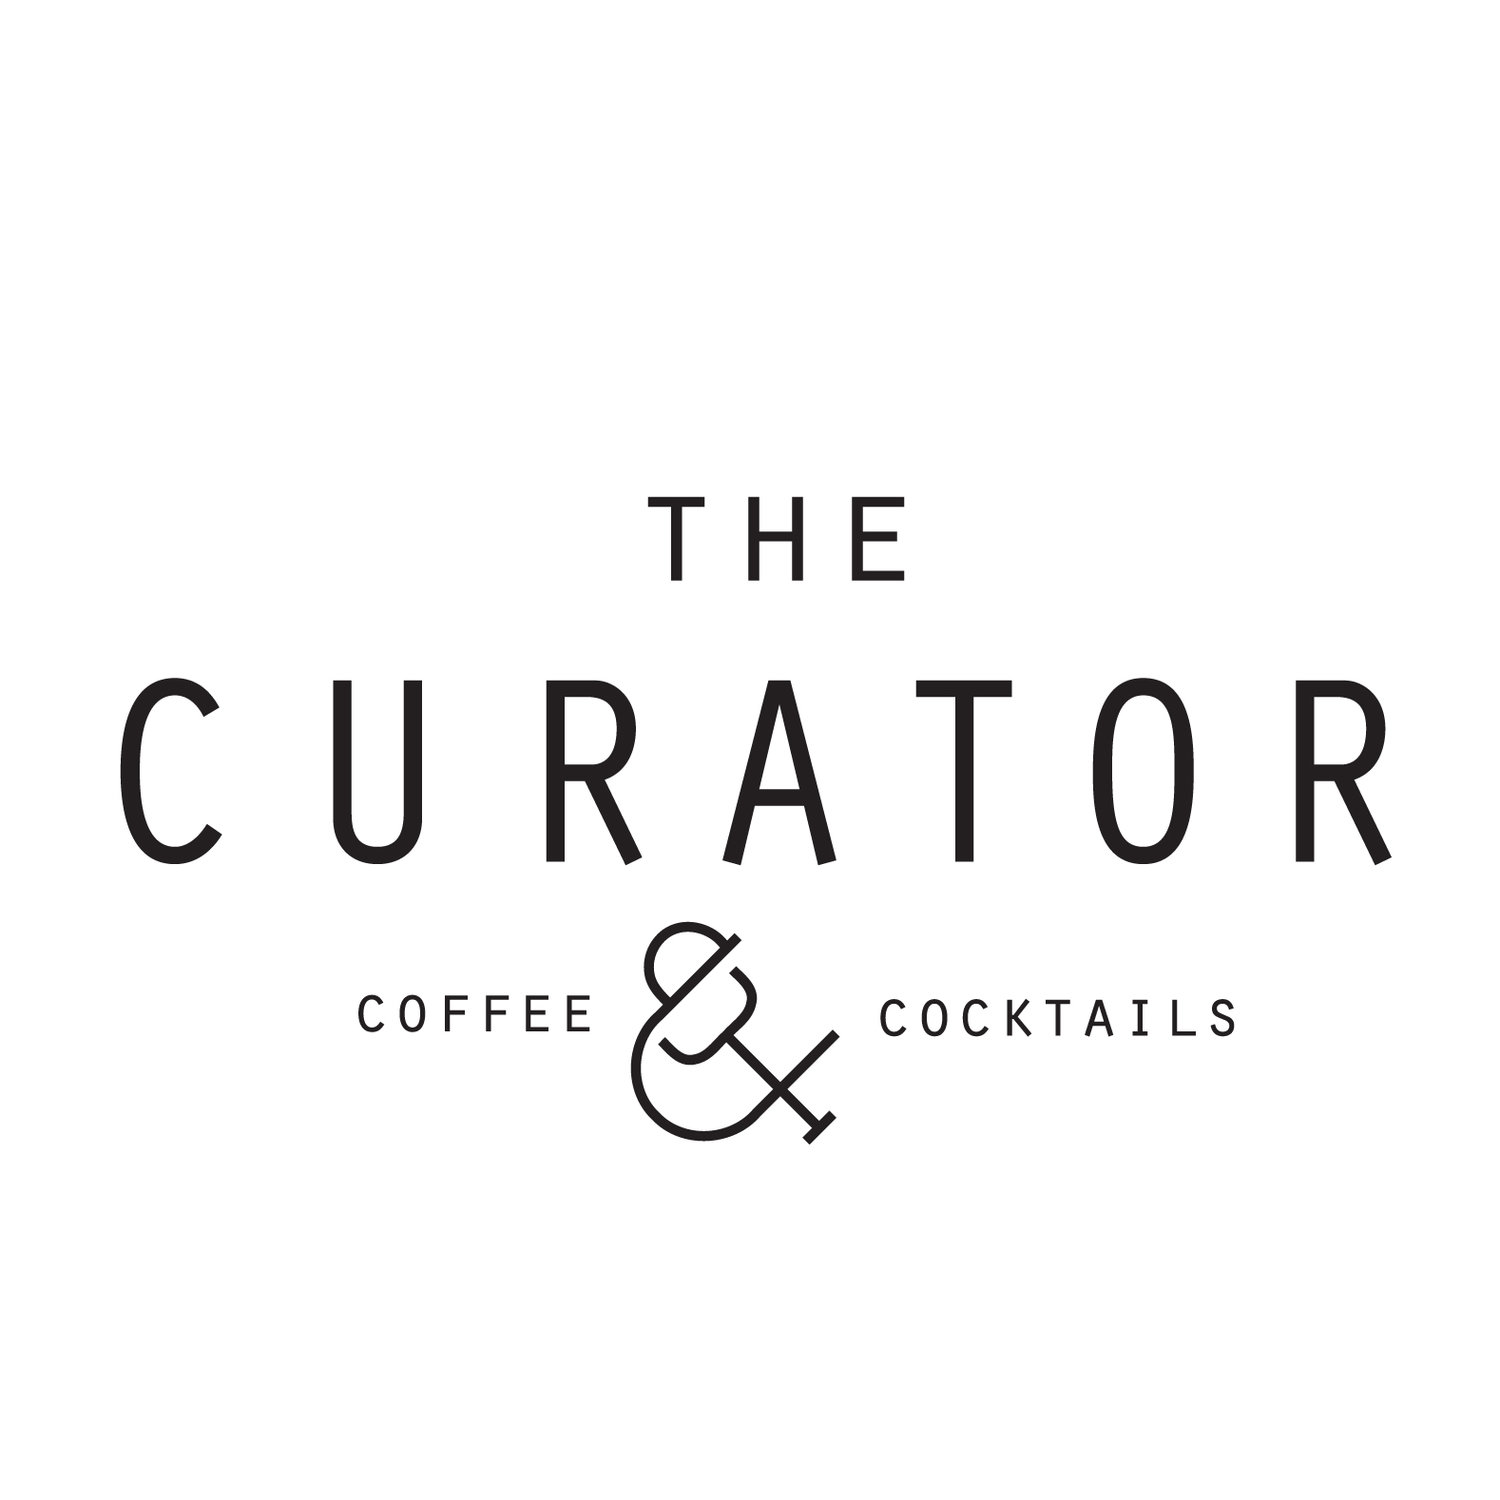 The Curator Coffee & Cocktails